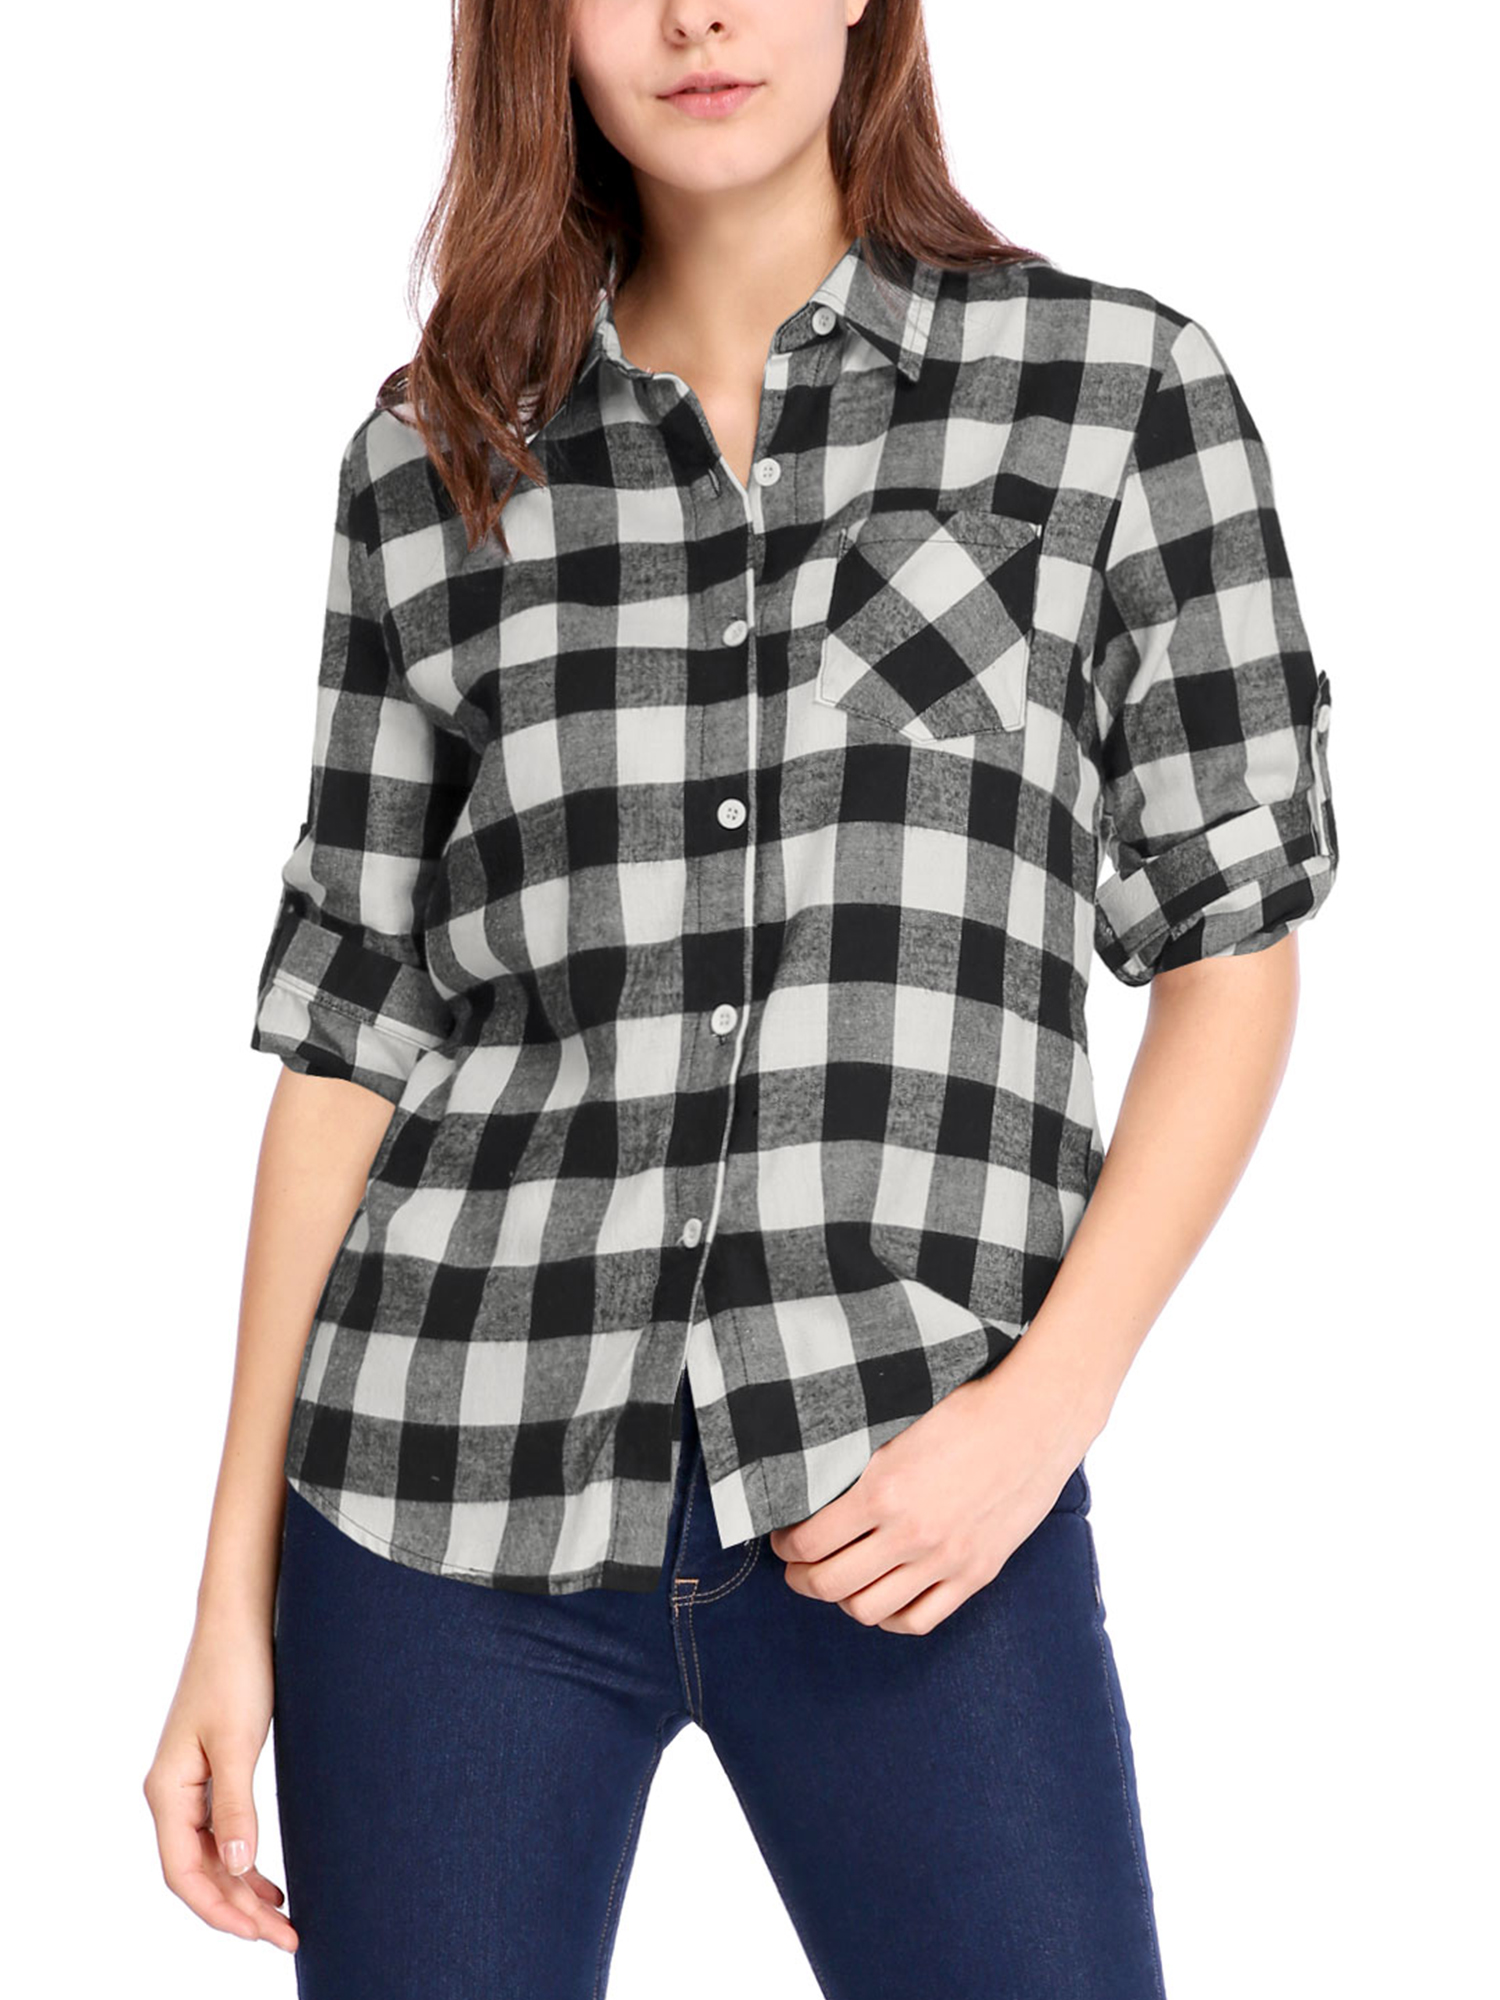 Allegra K Ladies Button Up Point Collar Casual Plaids Shirt White Black L